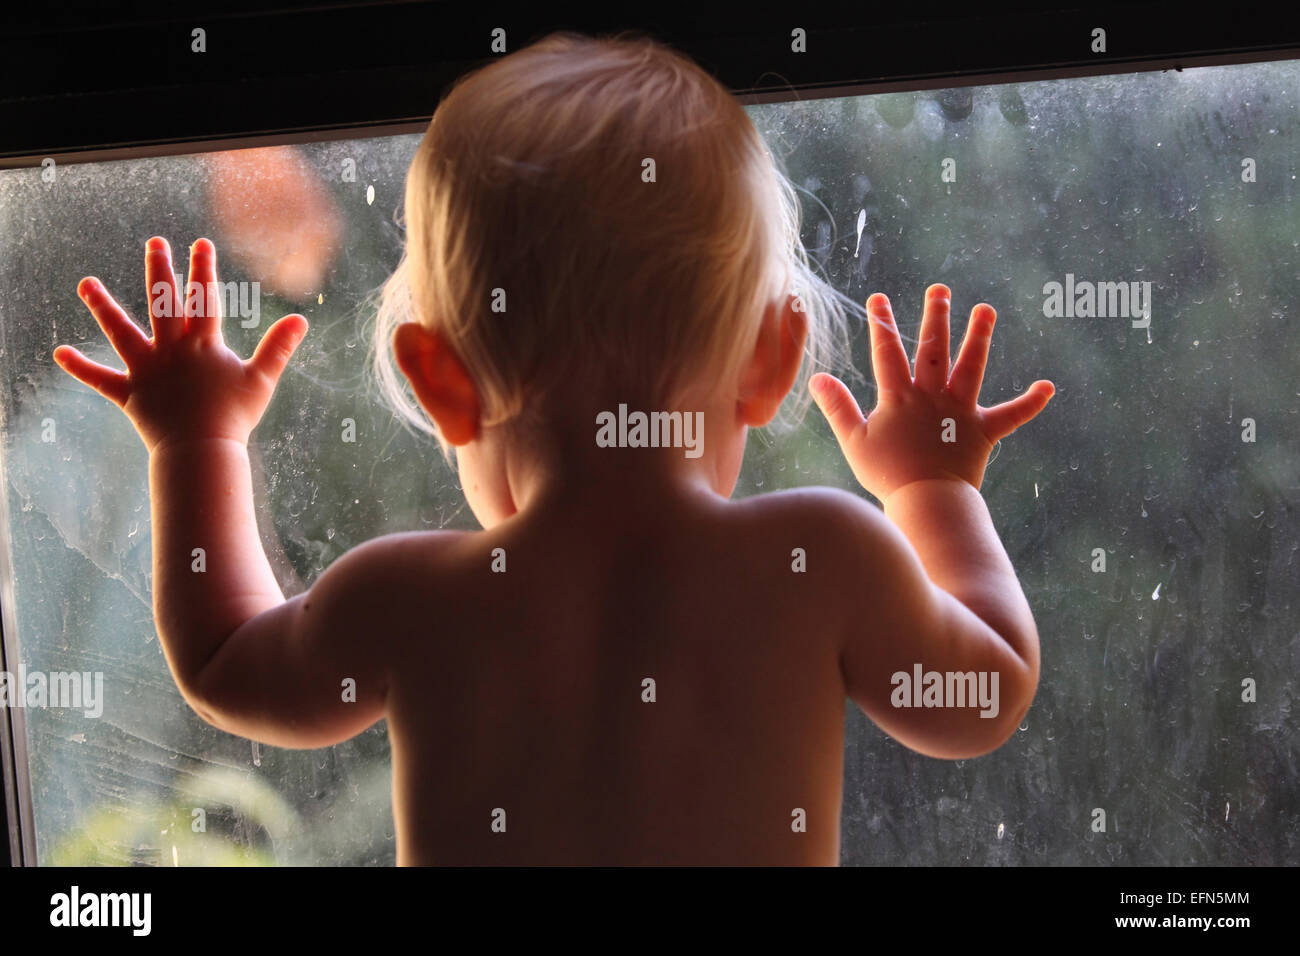 Baby girl looks out through a dirty window - Stock Image